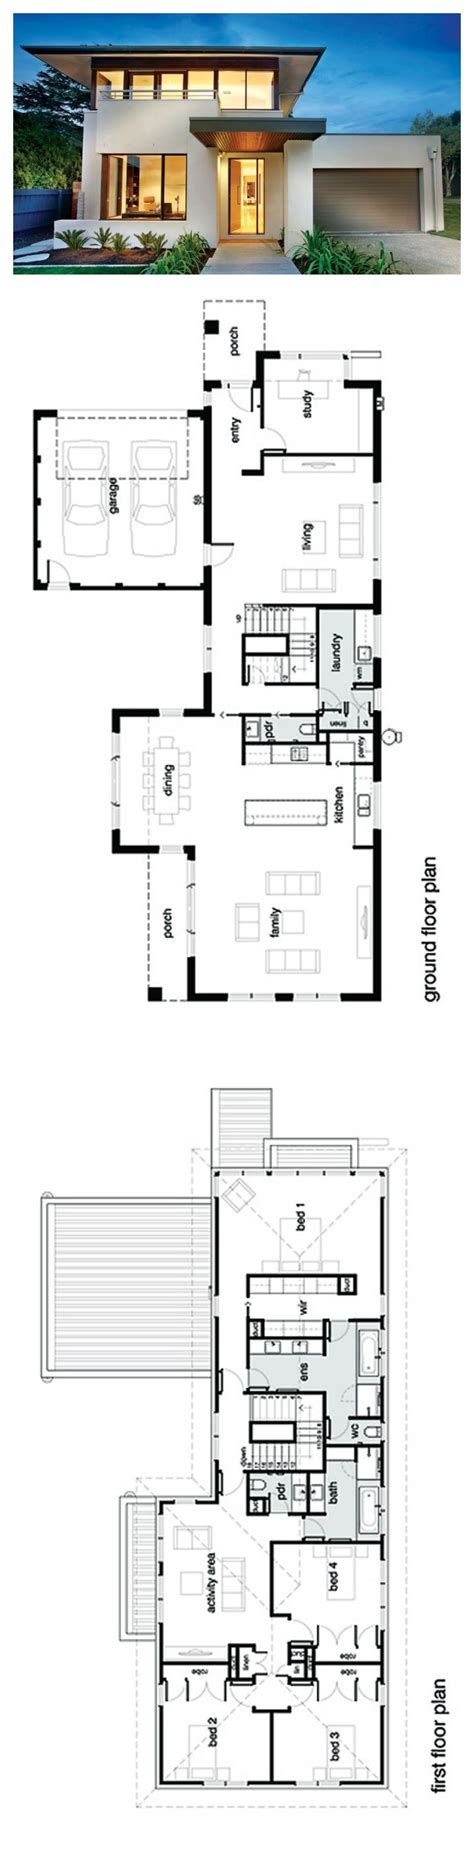 best home design layout best 25 modern house plans ideas on pinterest modern floor plans modern house floor plans